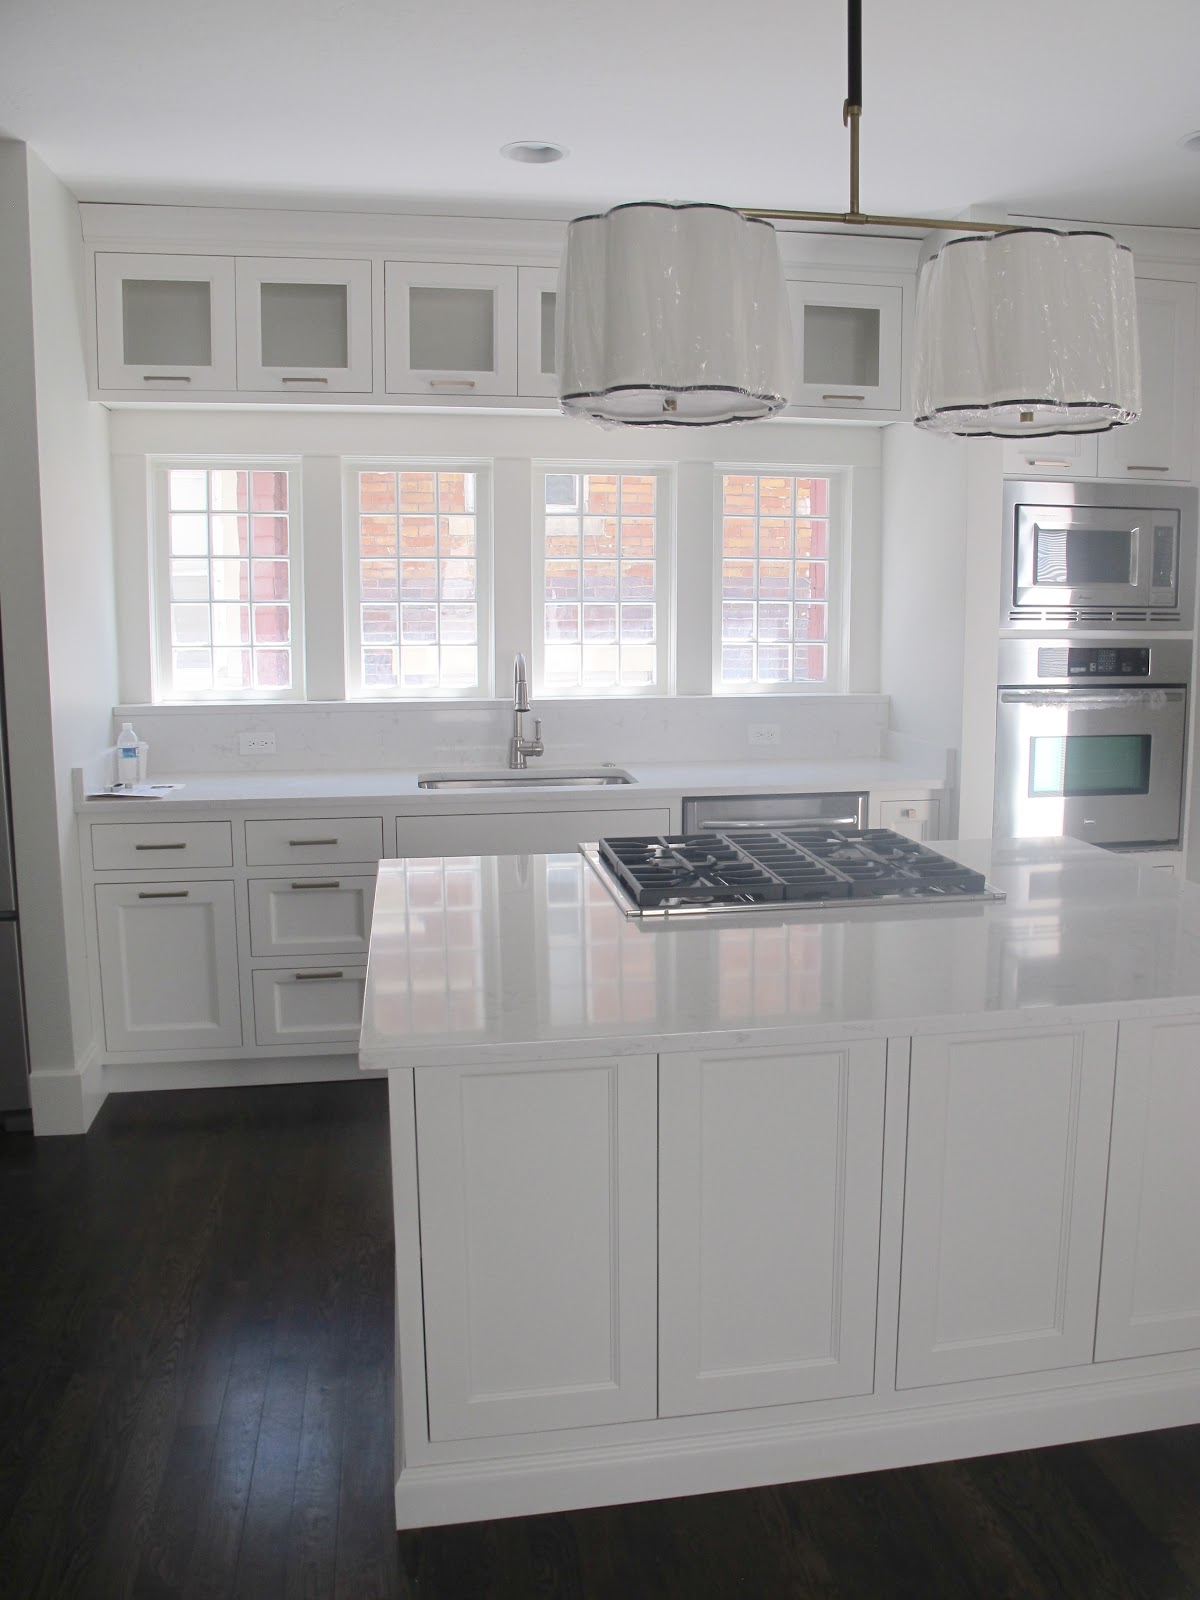 White gold before afters c street project ii for White kitchen with white quartz countertops